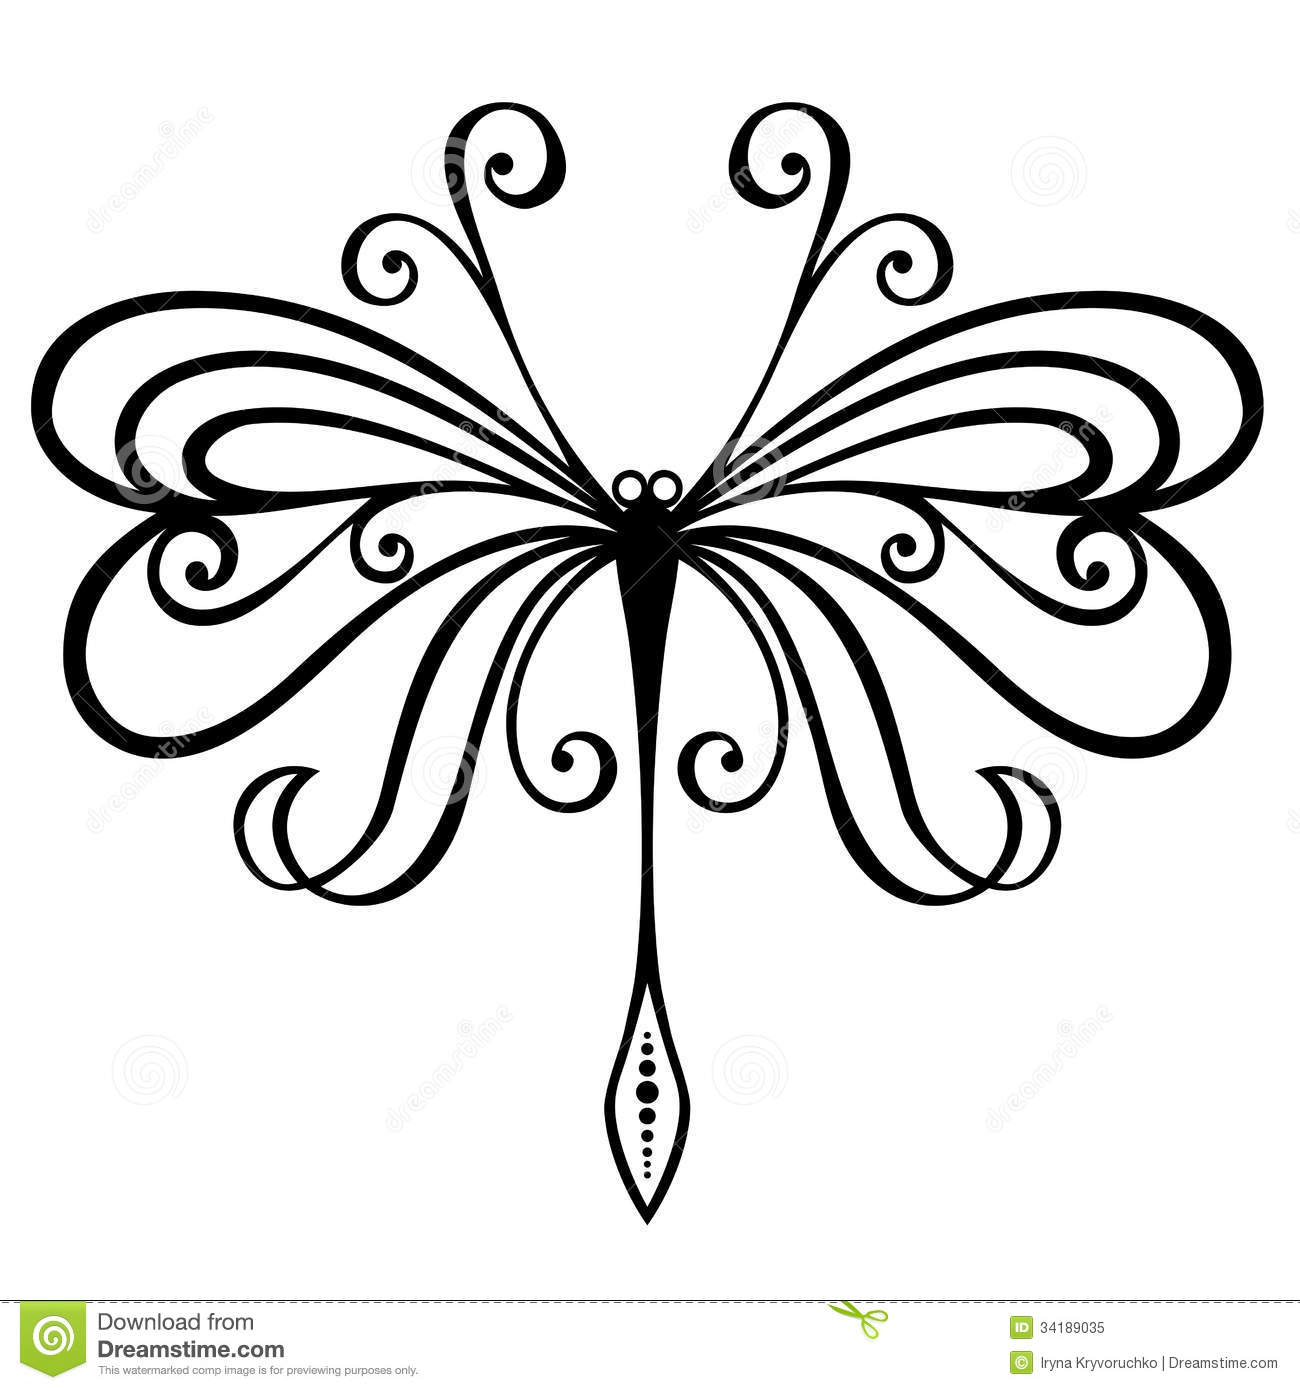 Insect dragonfly stock vector image of illustration 34189035 Drawing images free download